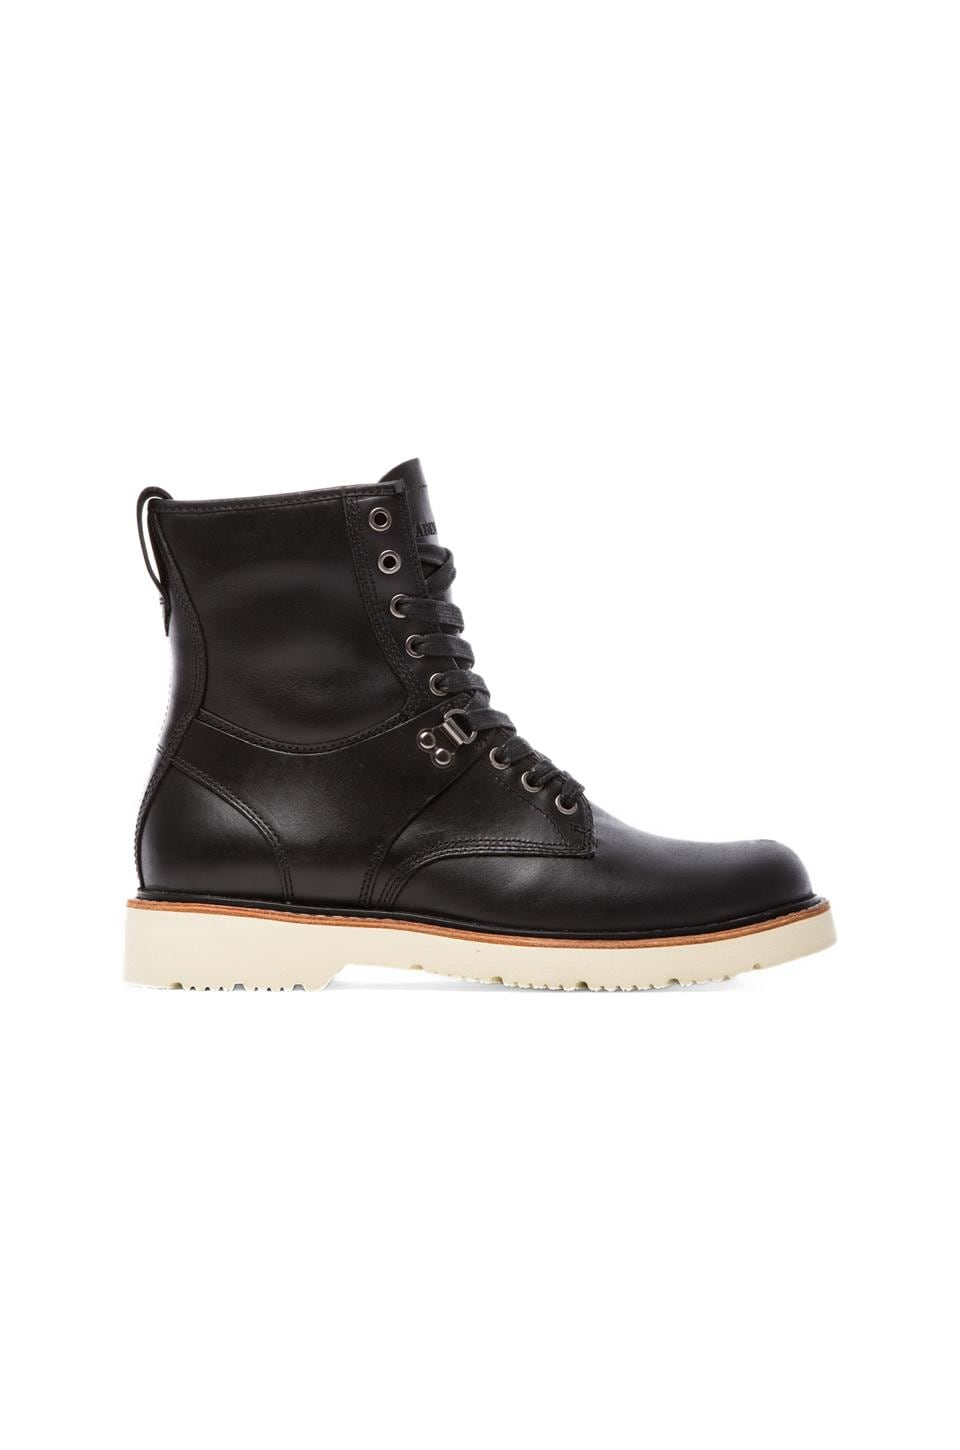 Abington Quarryville Tall Boot in Black Quartz